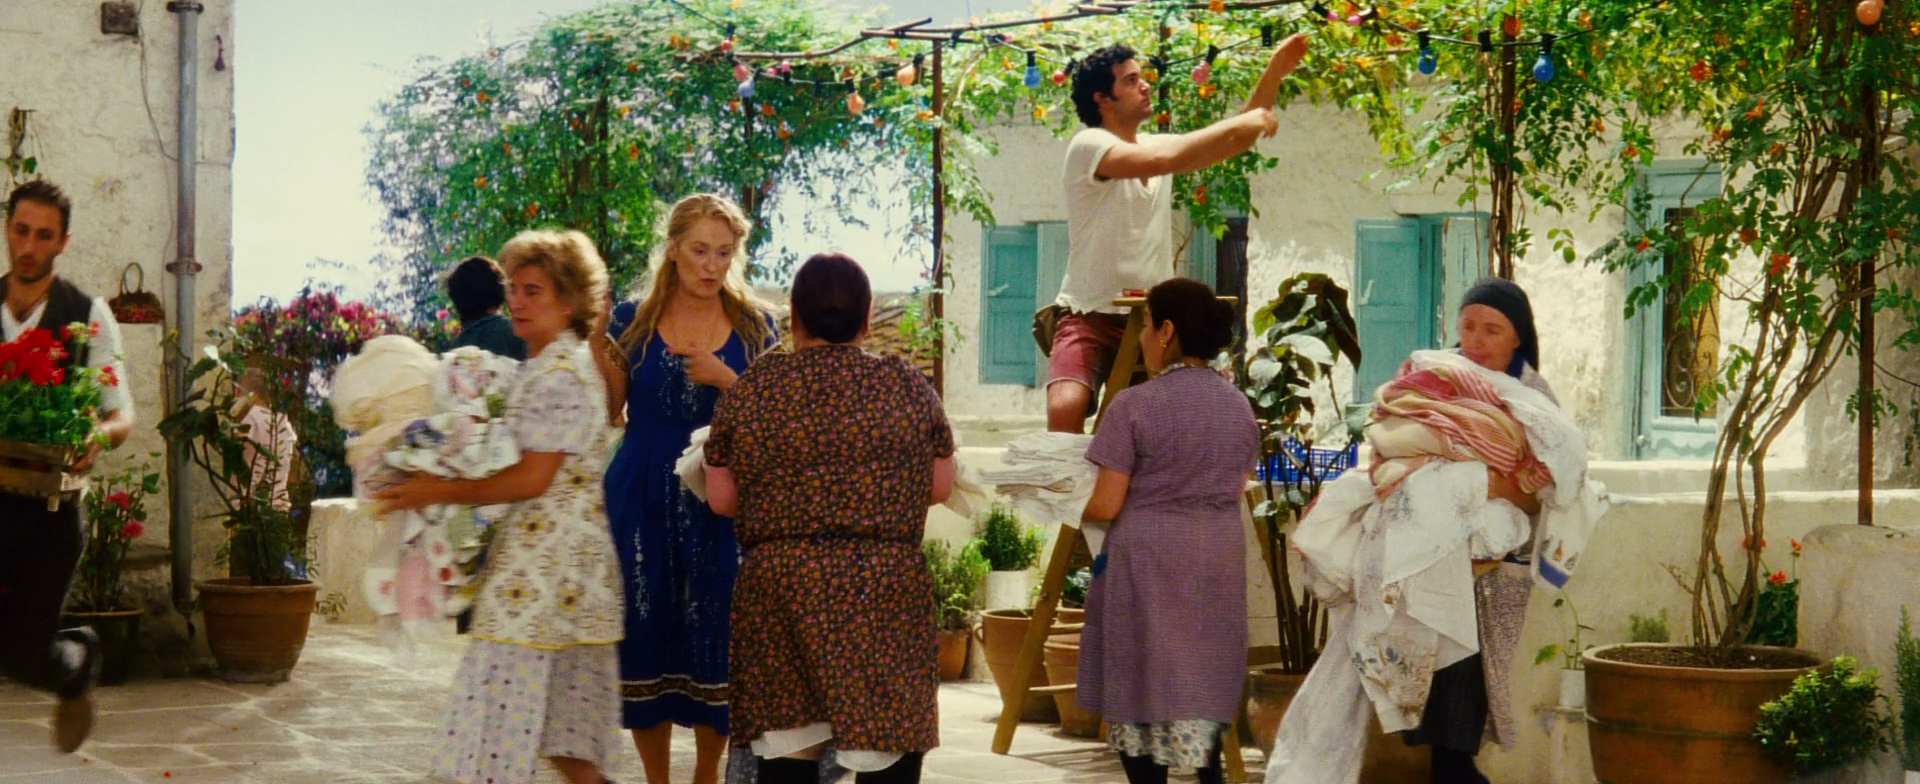 Get organised well before the wedding to avoid last minute rush. Meryl Streep in Mamma Mia setting up her daughters wedding.